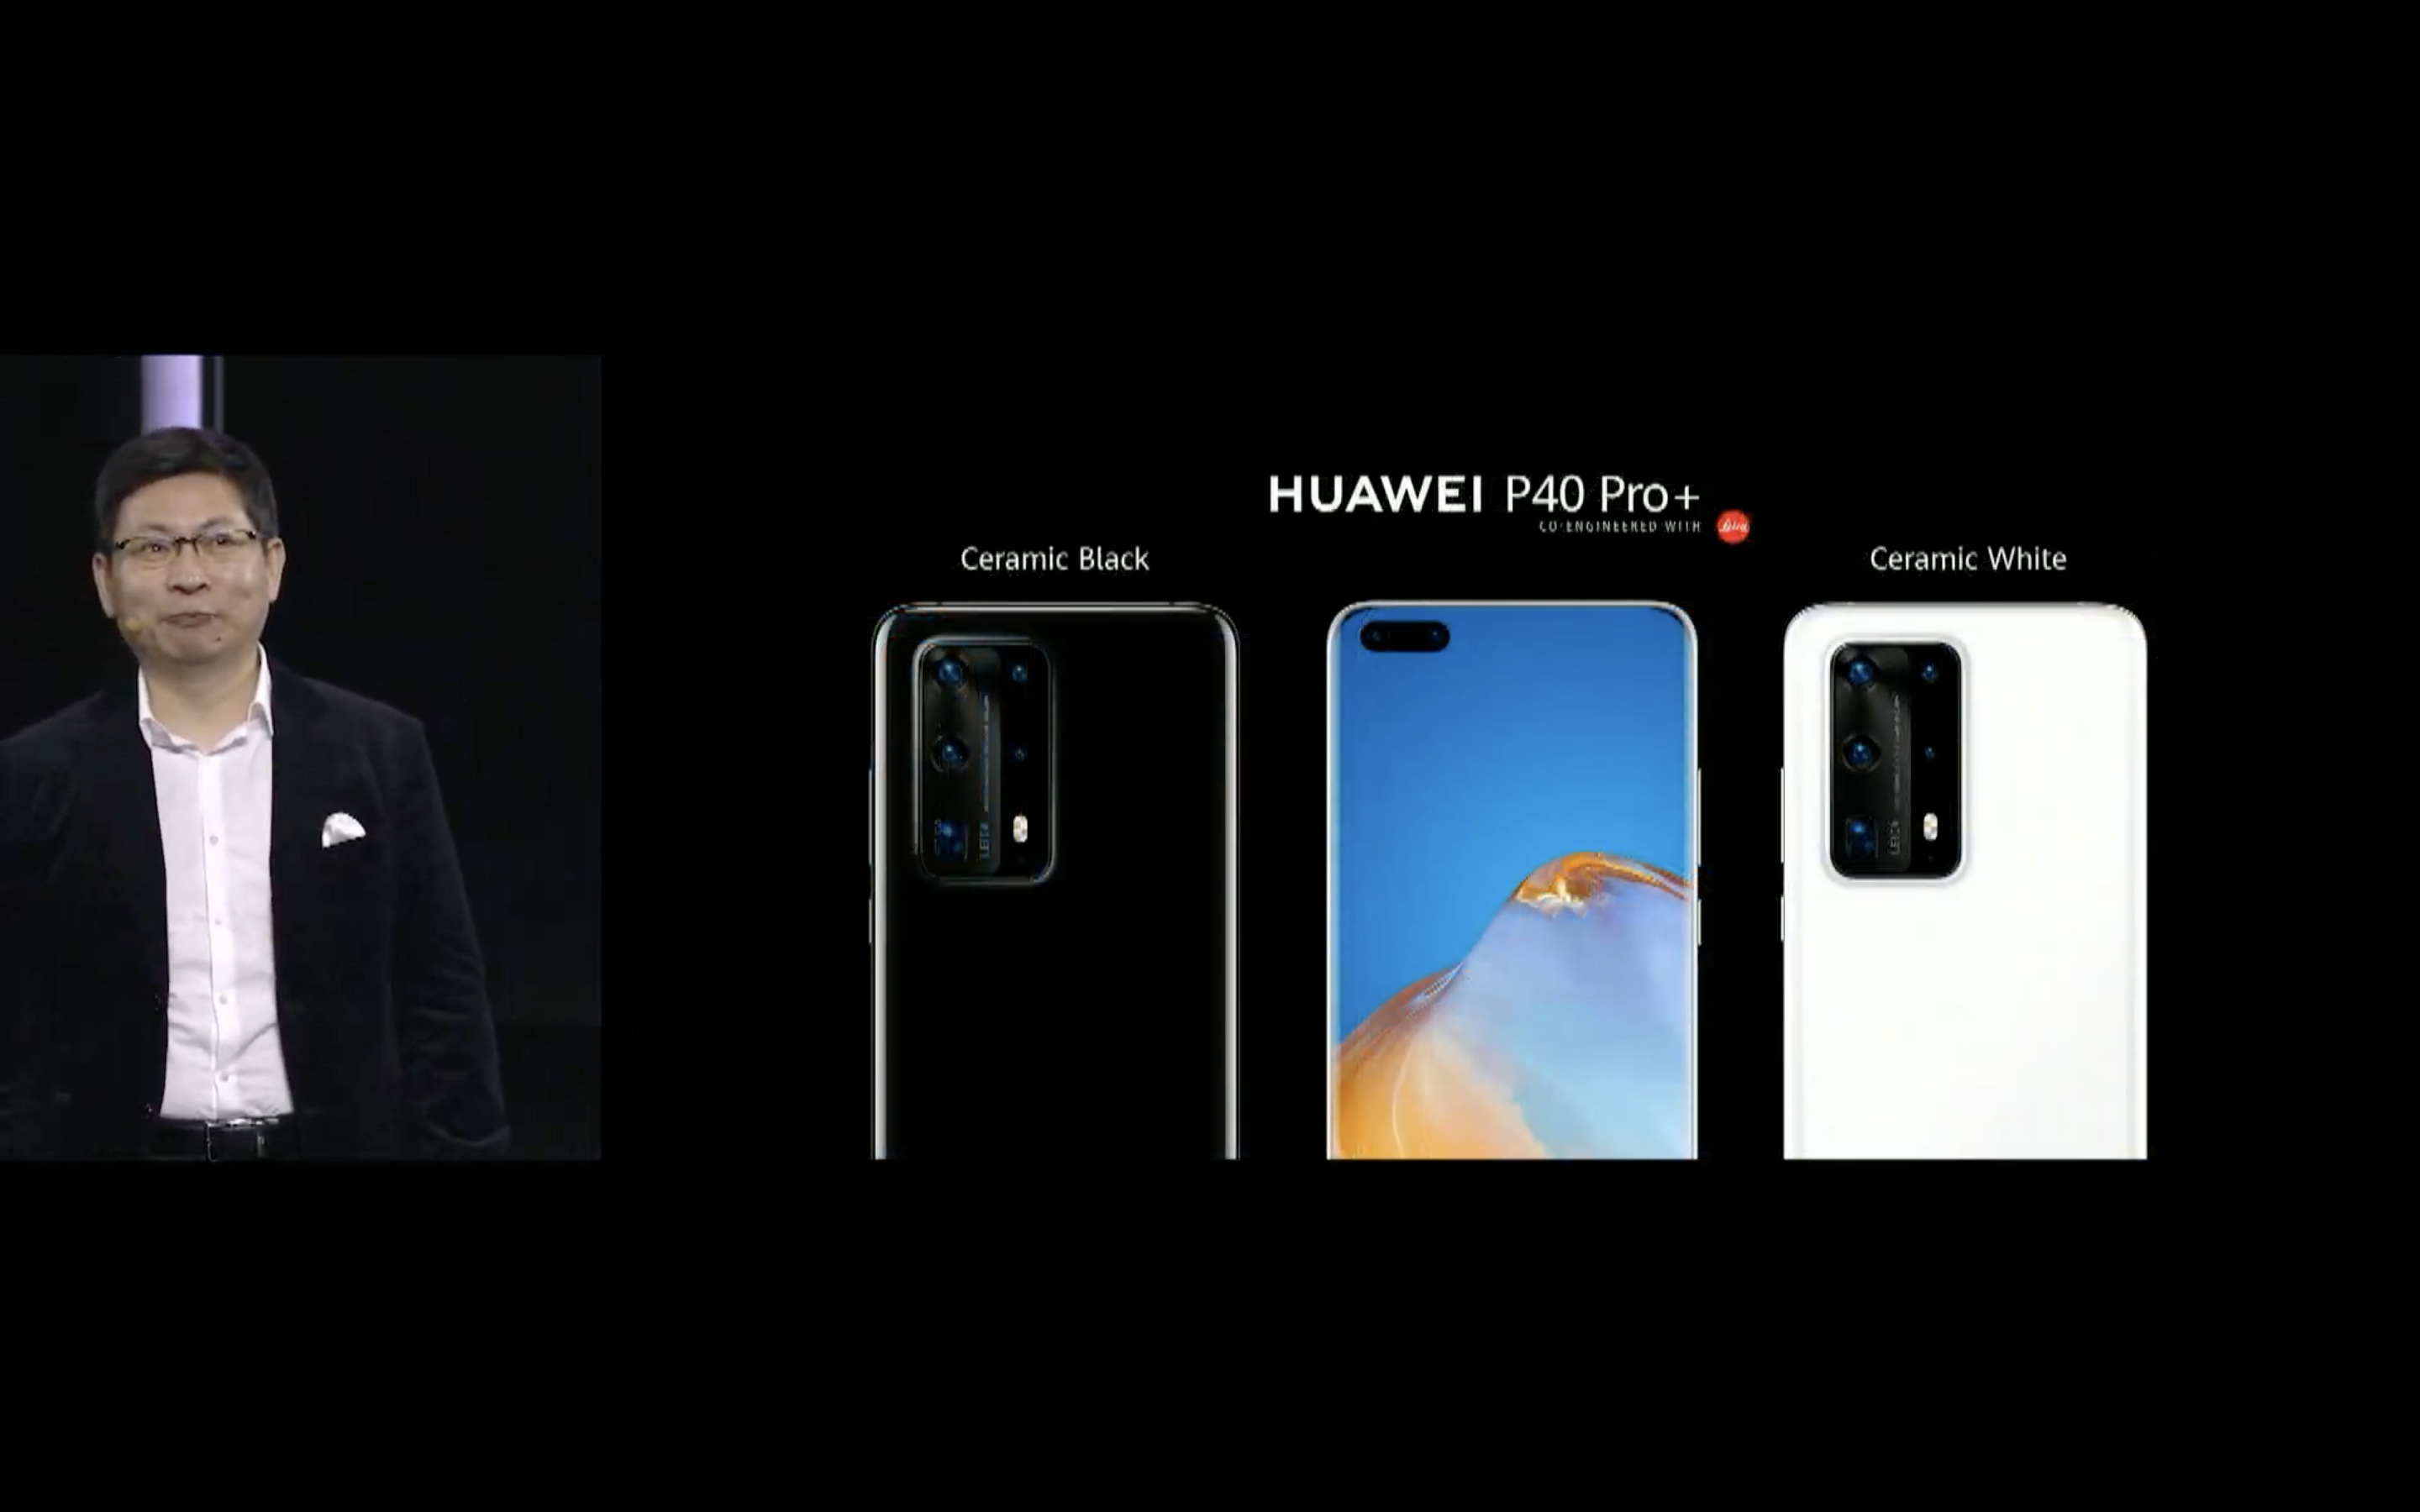 Huawei P40 Pro and Huawei P40 Pro Plus Black Ceramic and White Ceramic